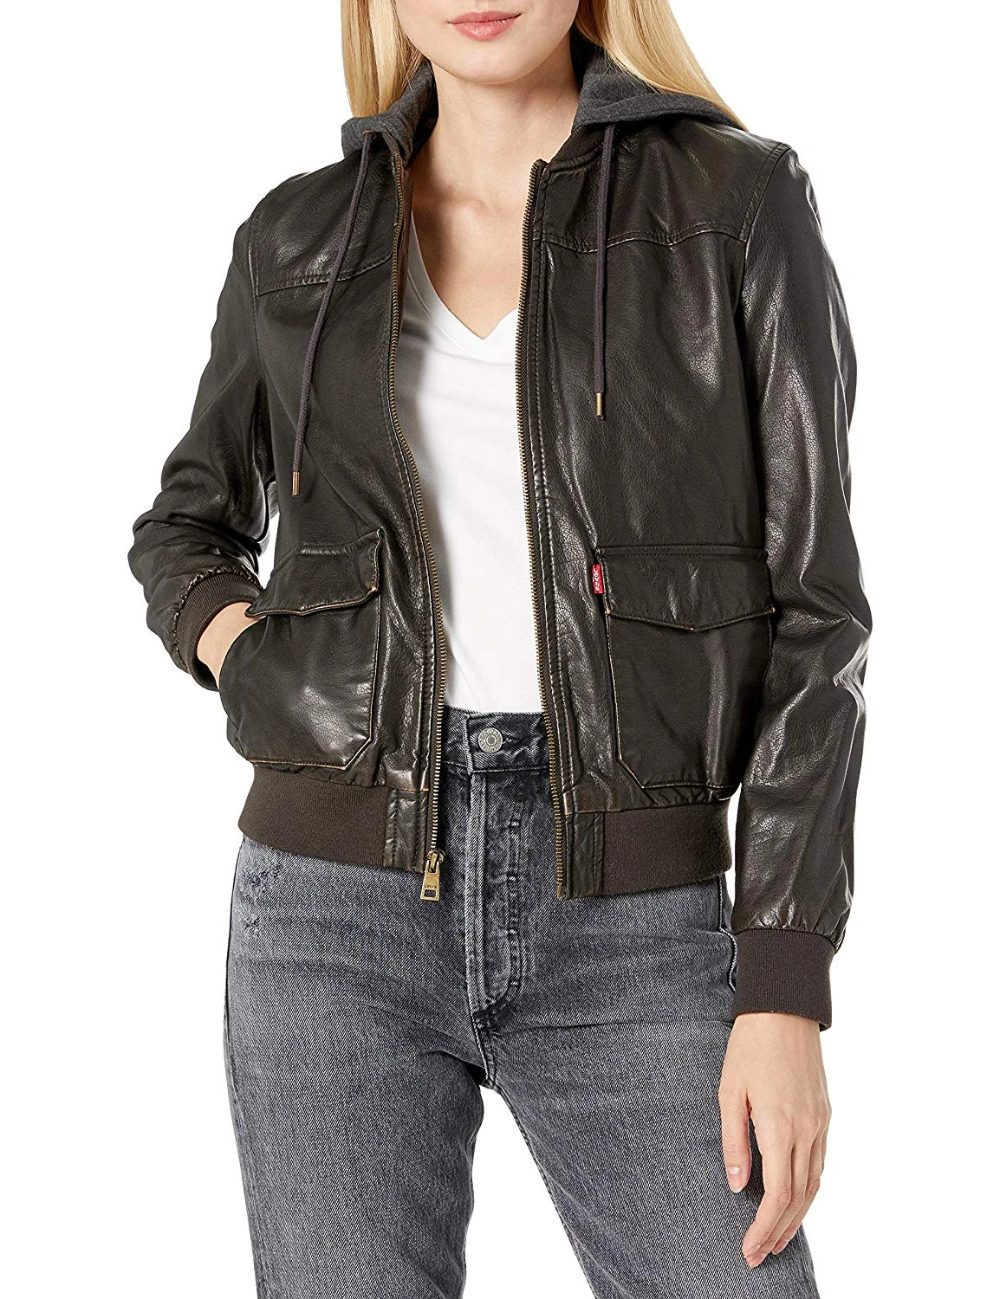 Levi S Two Pocket Faux Leather Hooded Bomber Jacket Hooded Bomber Jacket Bomber Jacket Women Leather Bomber Jacket [ 1299 x 1000 Pixel ]